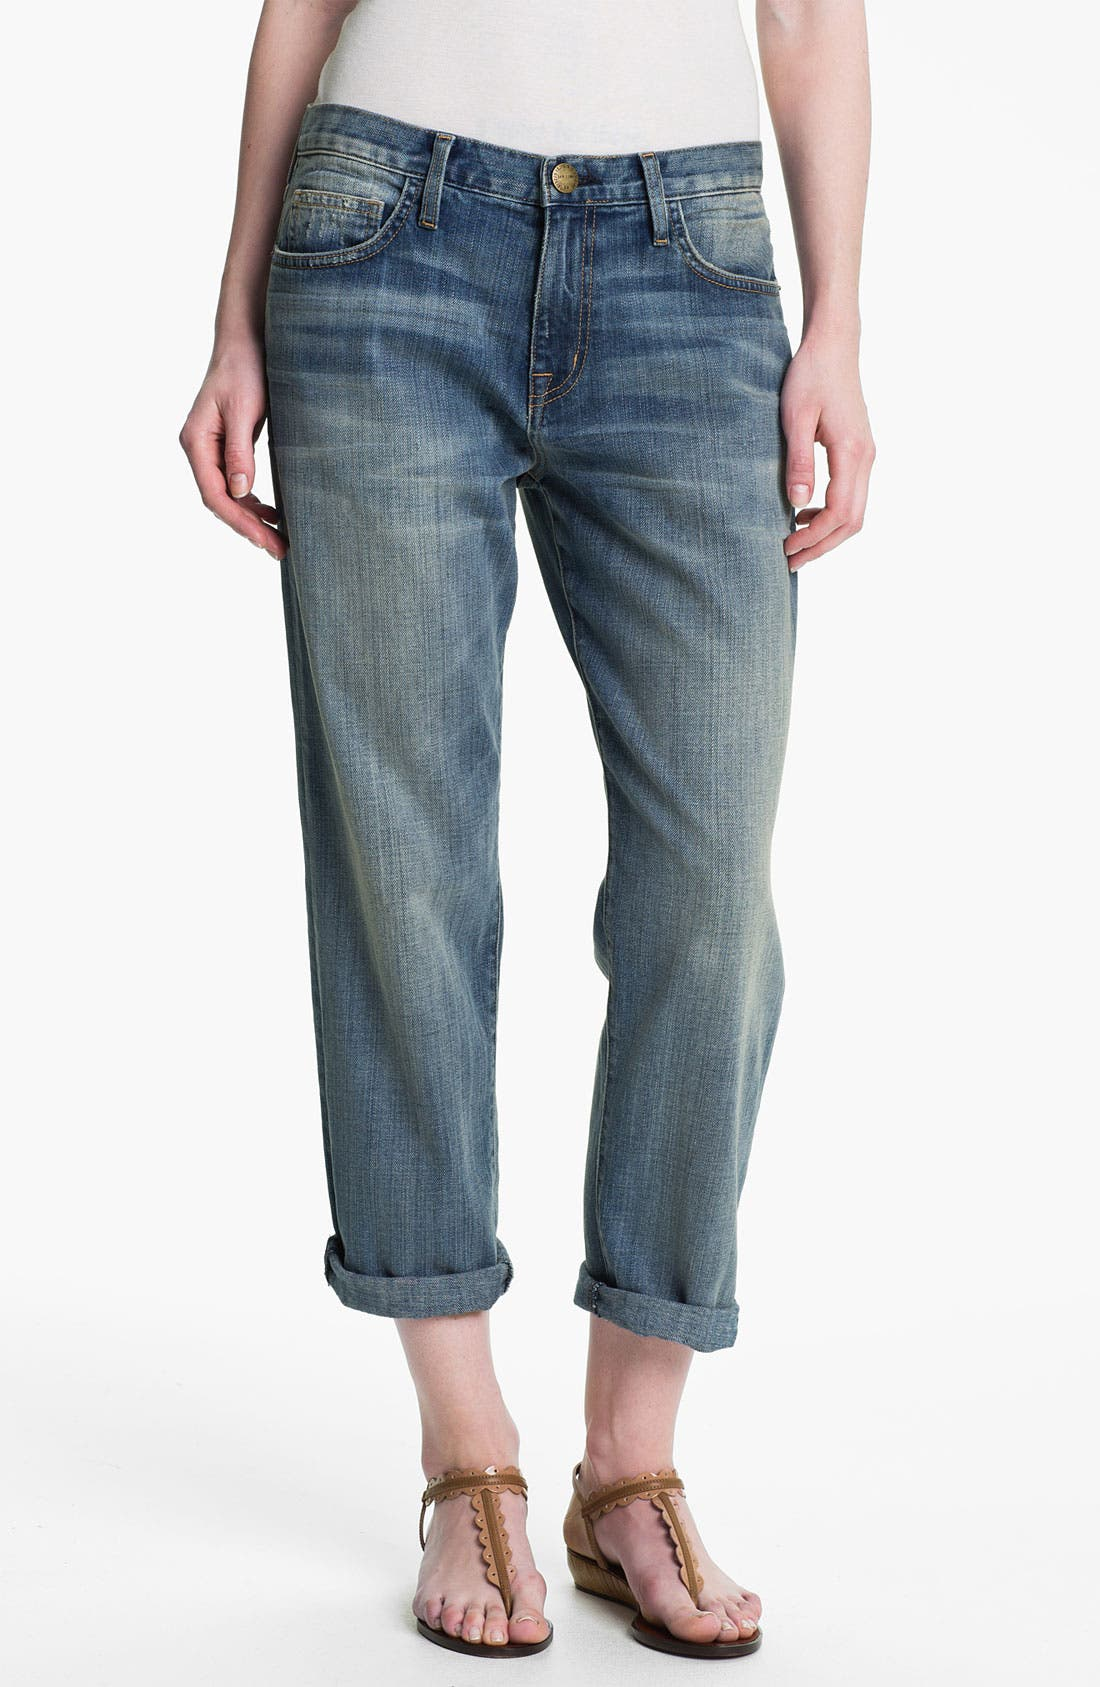 Alternate Image 1 Selected - Current/Elliott 'The Boyfriend Jean' Jeans (Super Loved)